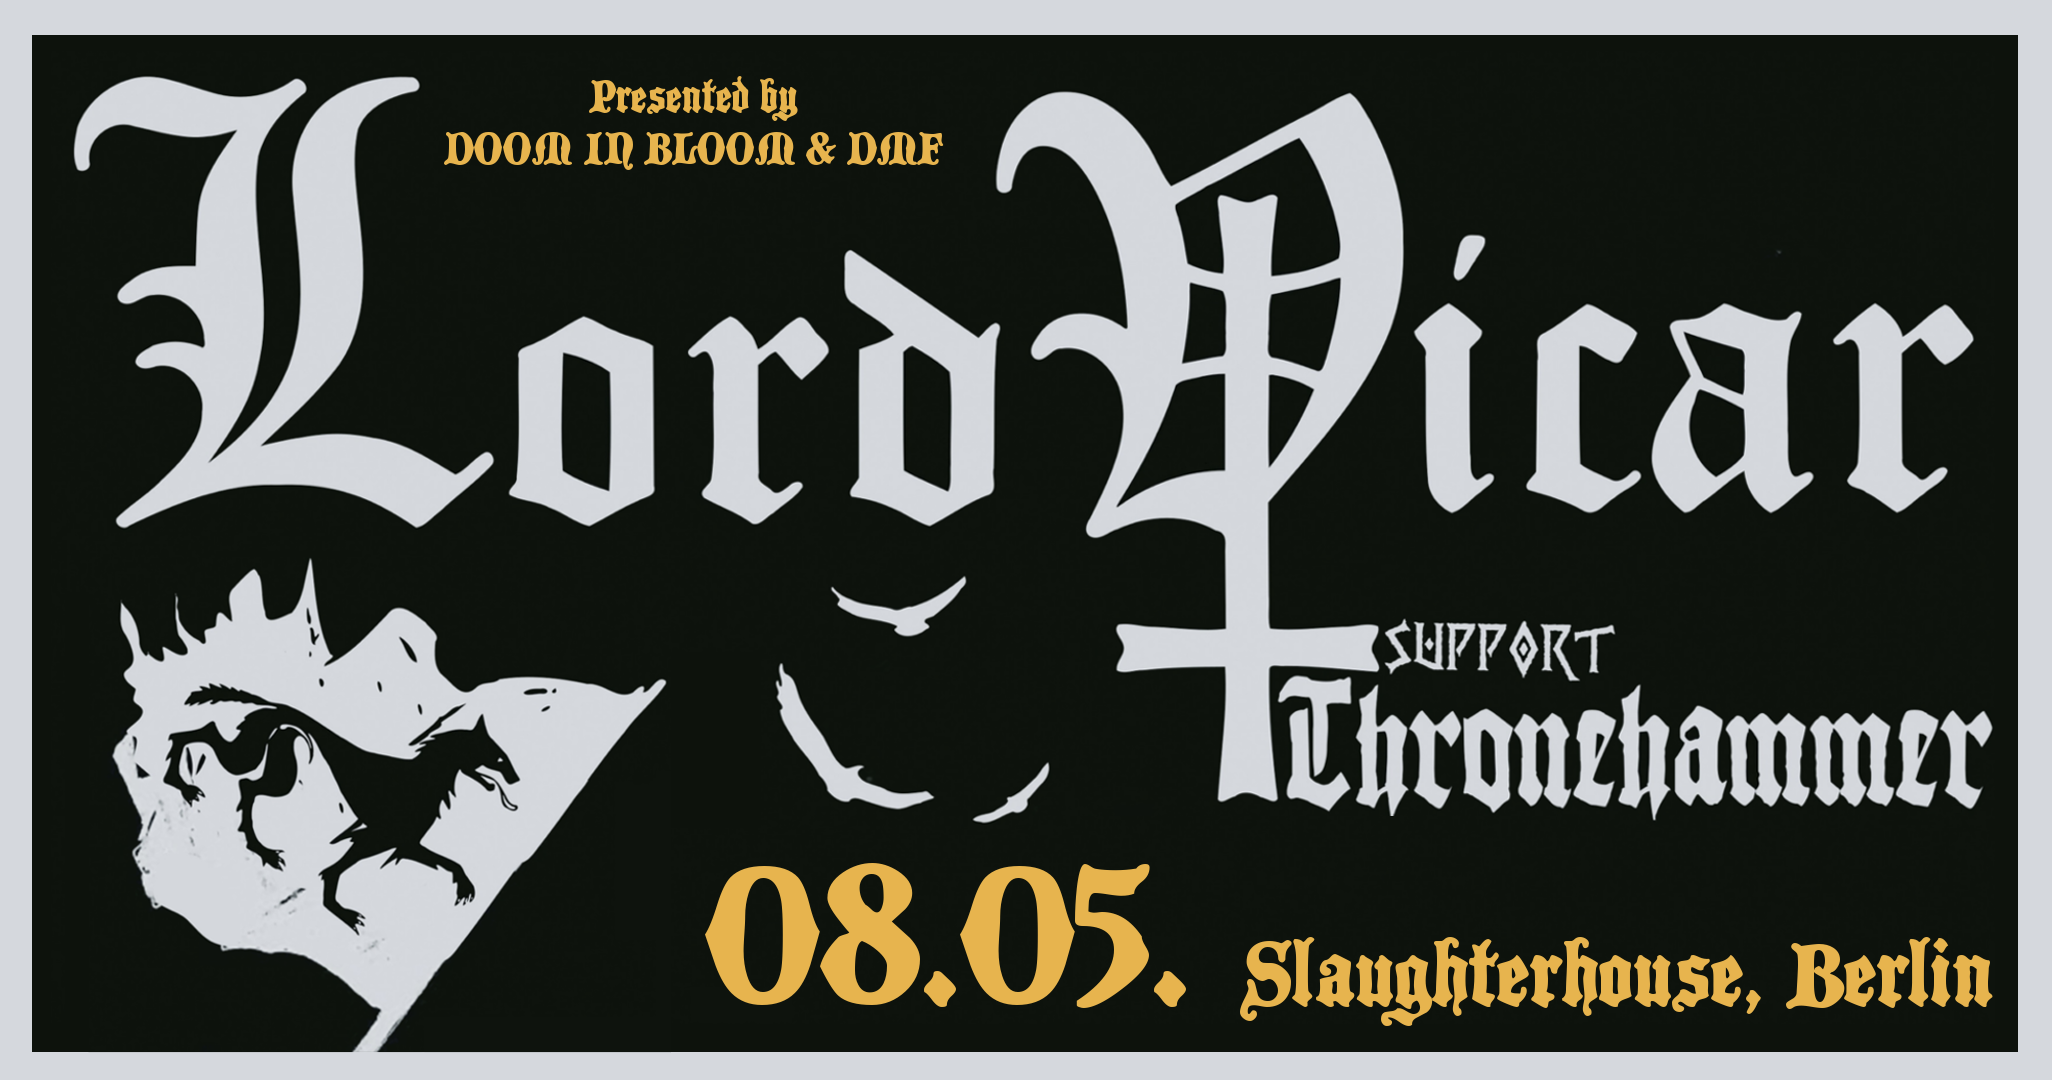 Lord Vicar + Thronehammer @ Slaughterhouse Moabit